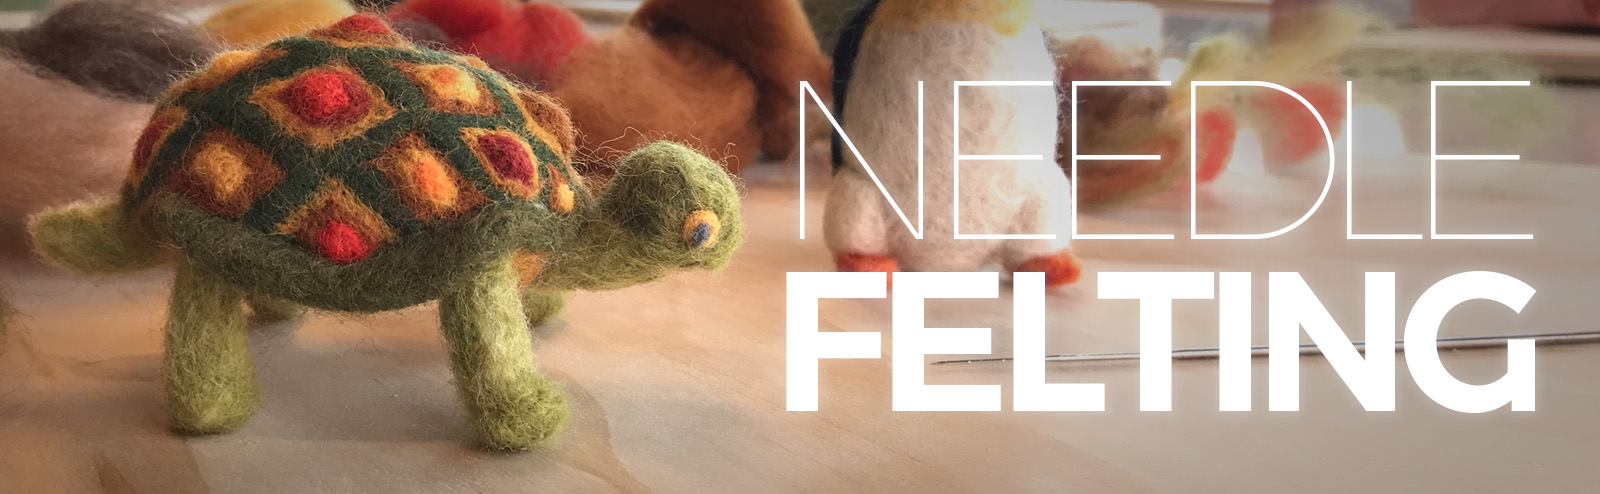 January 26 - Needle Felting Animals